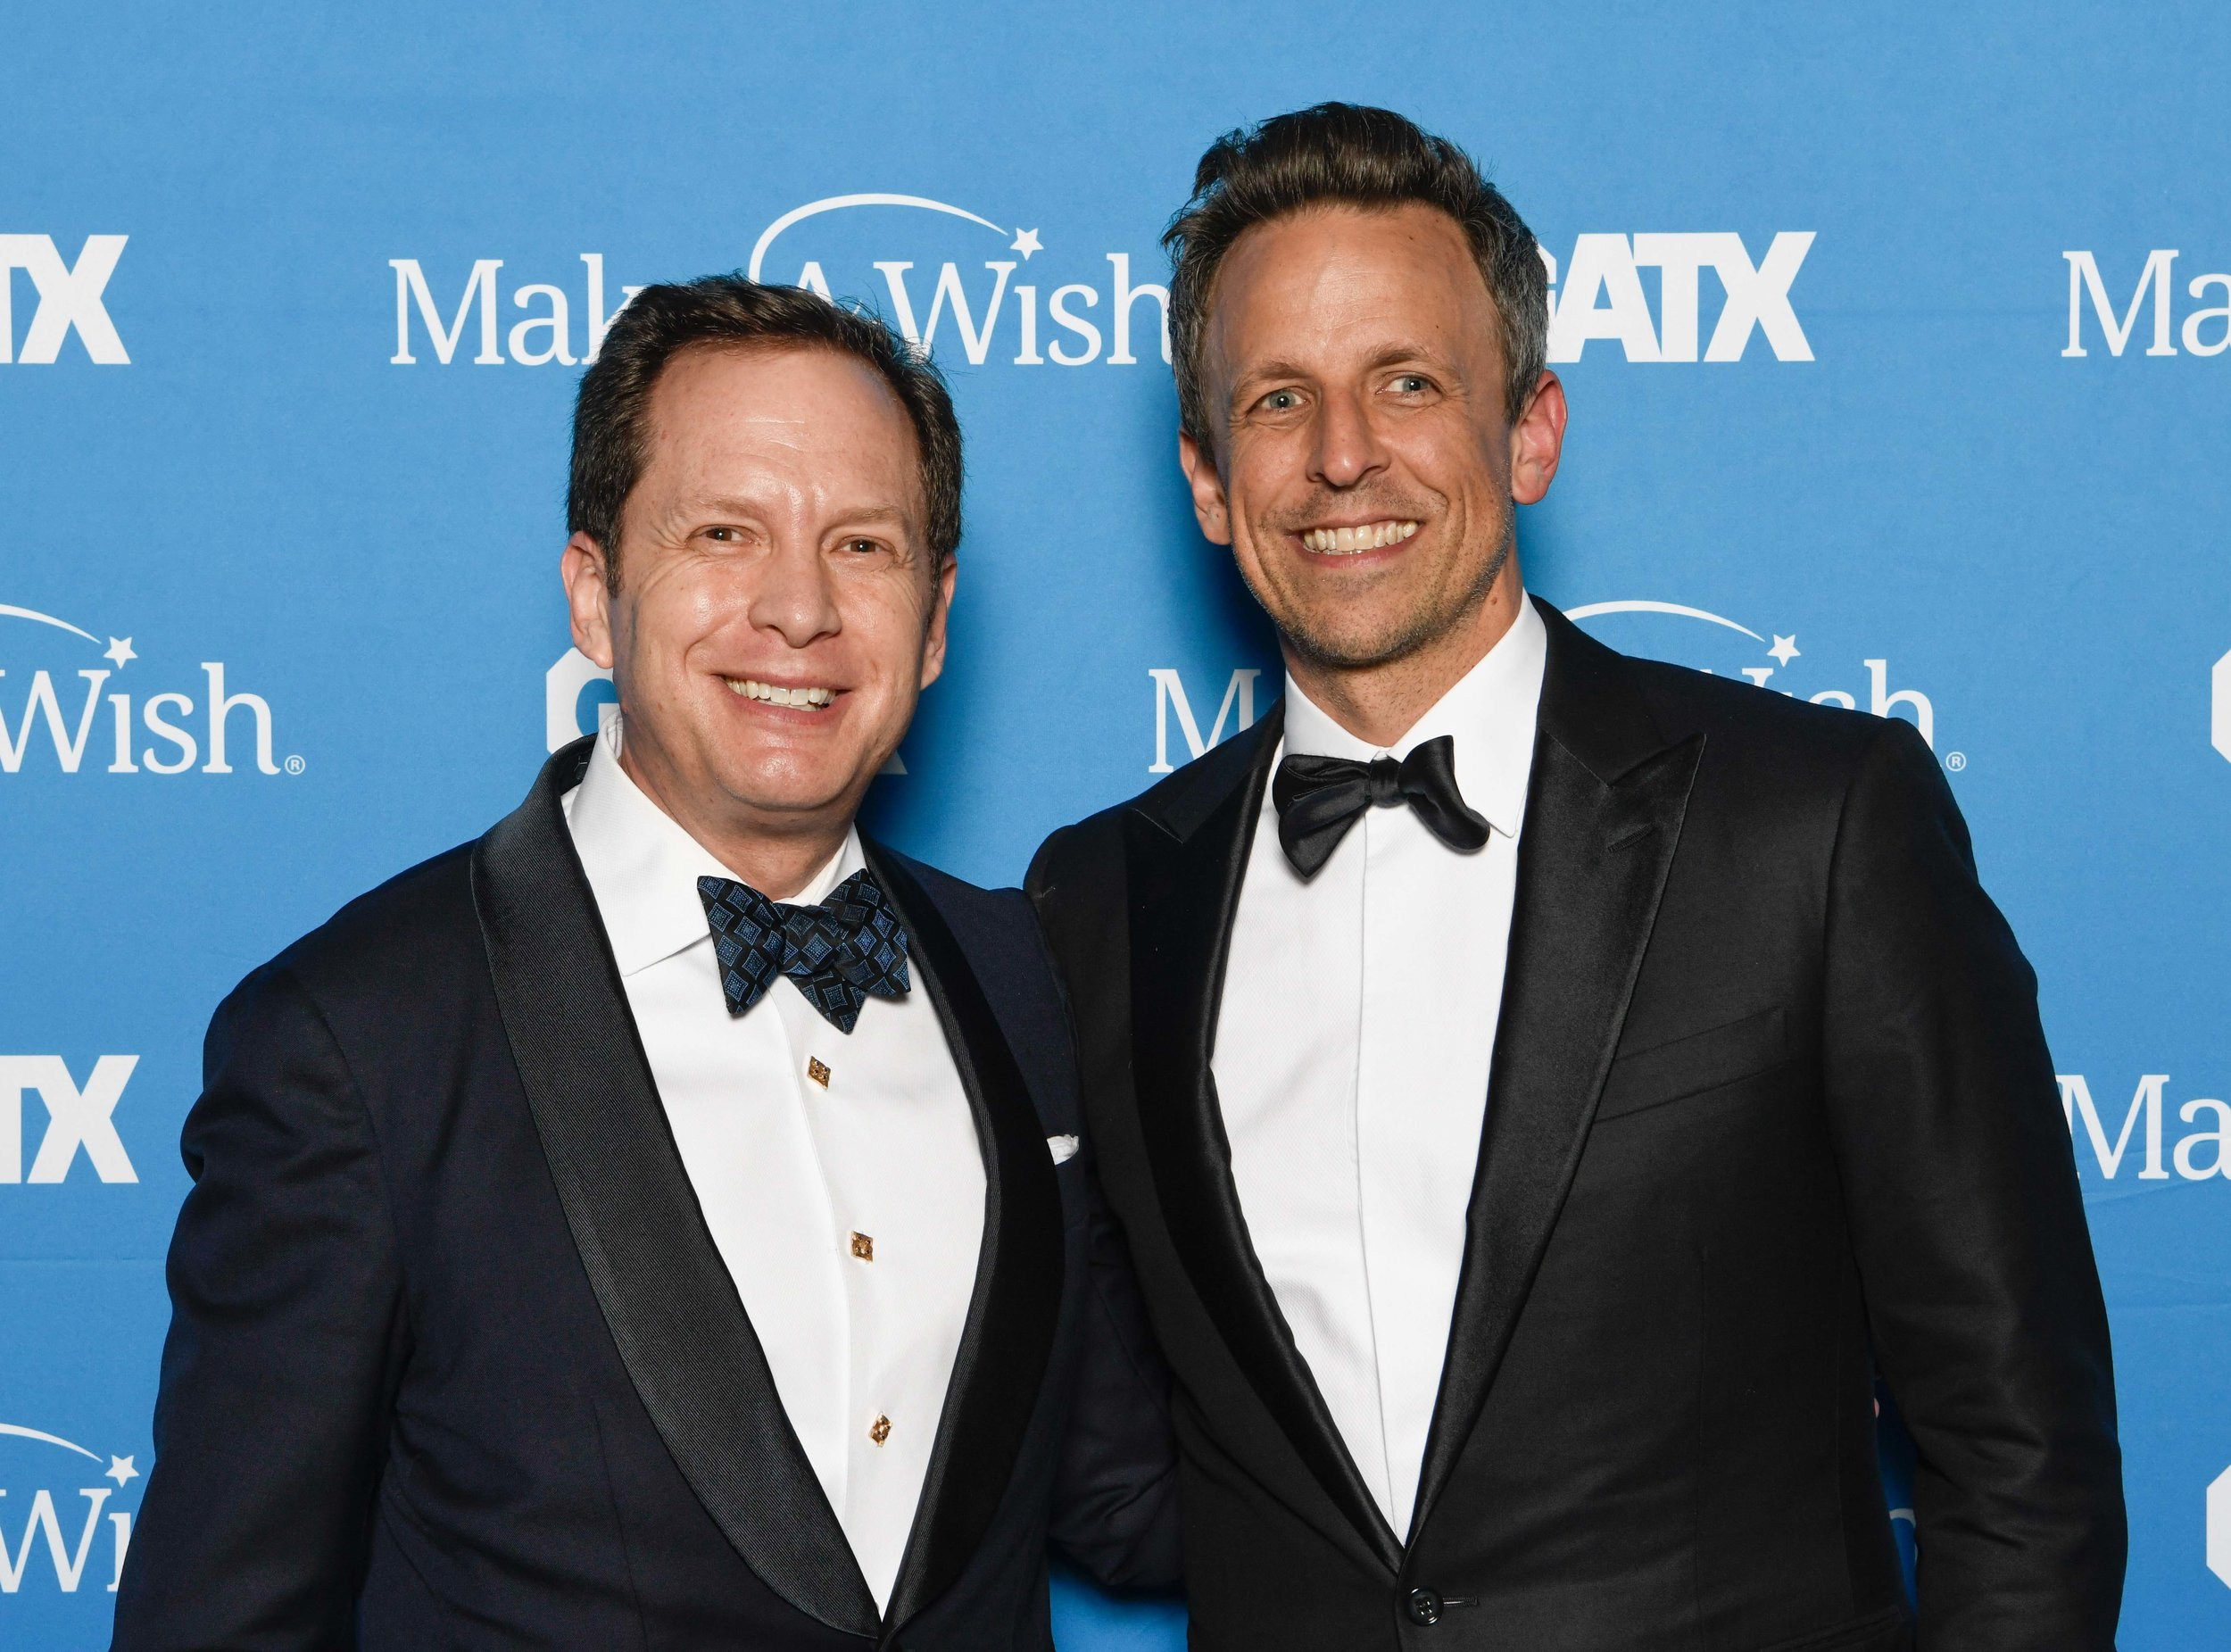 With Seth Meyers